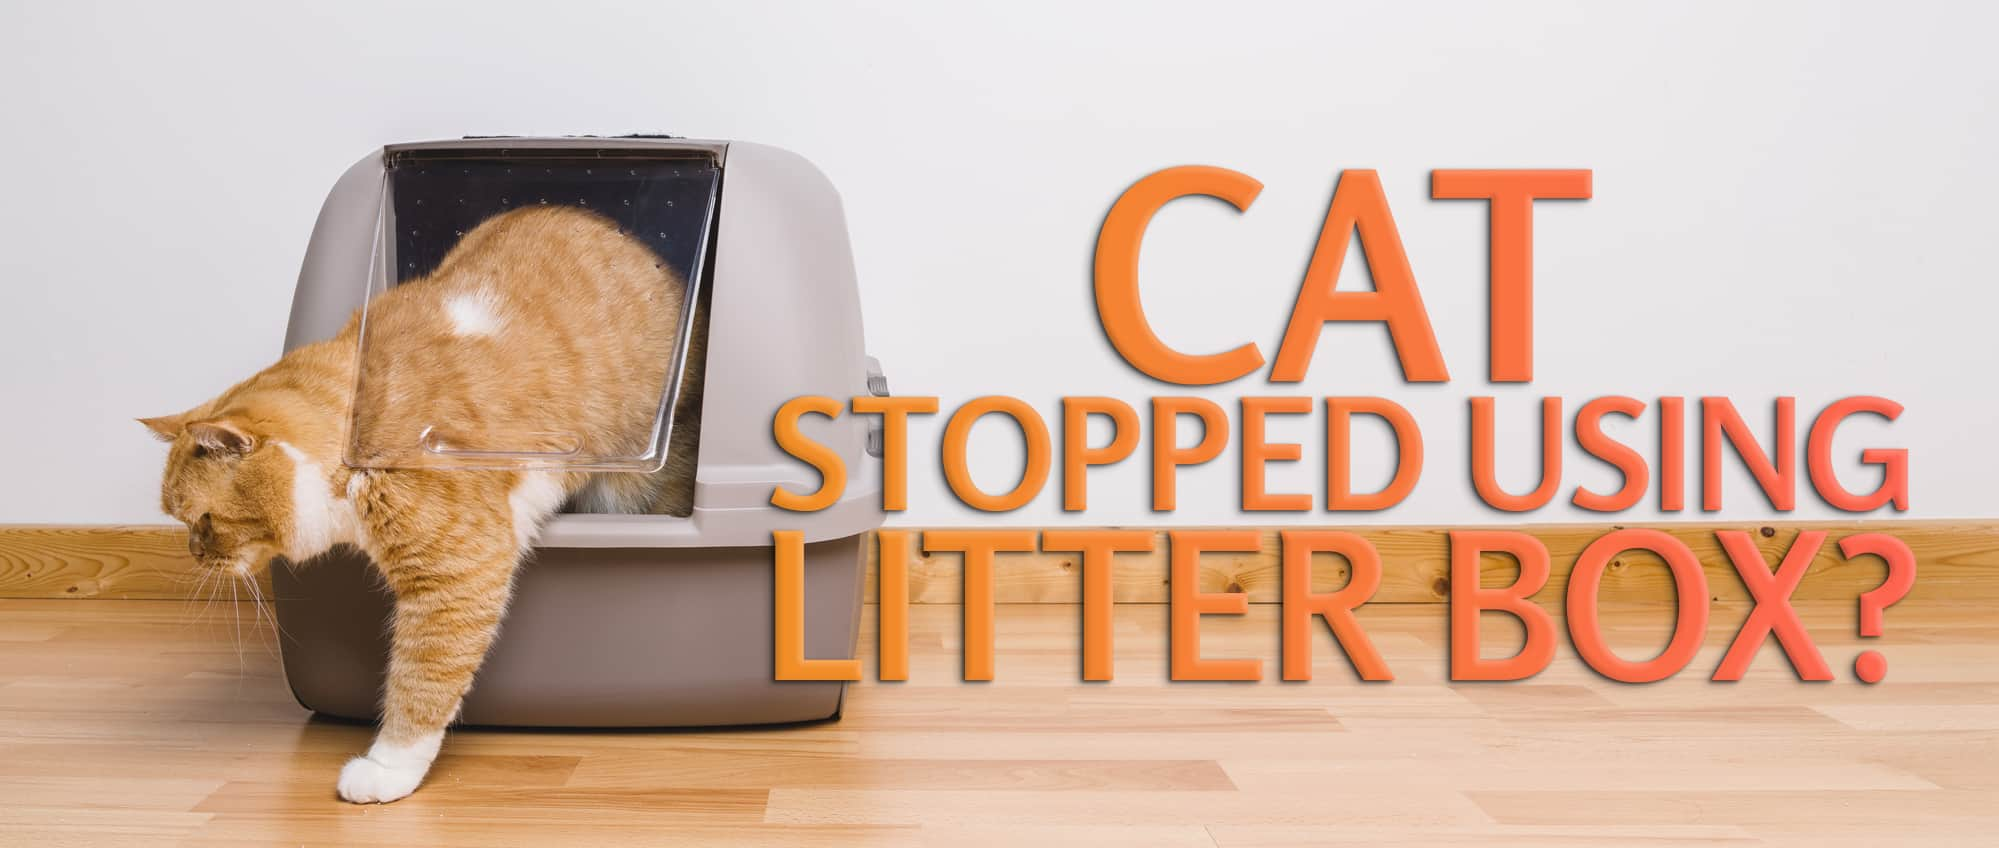 Cat Stopped Using Litter Box